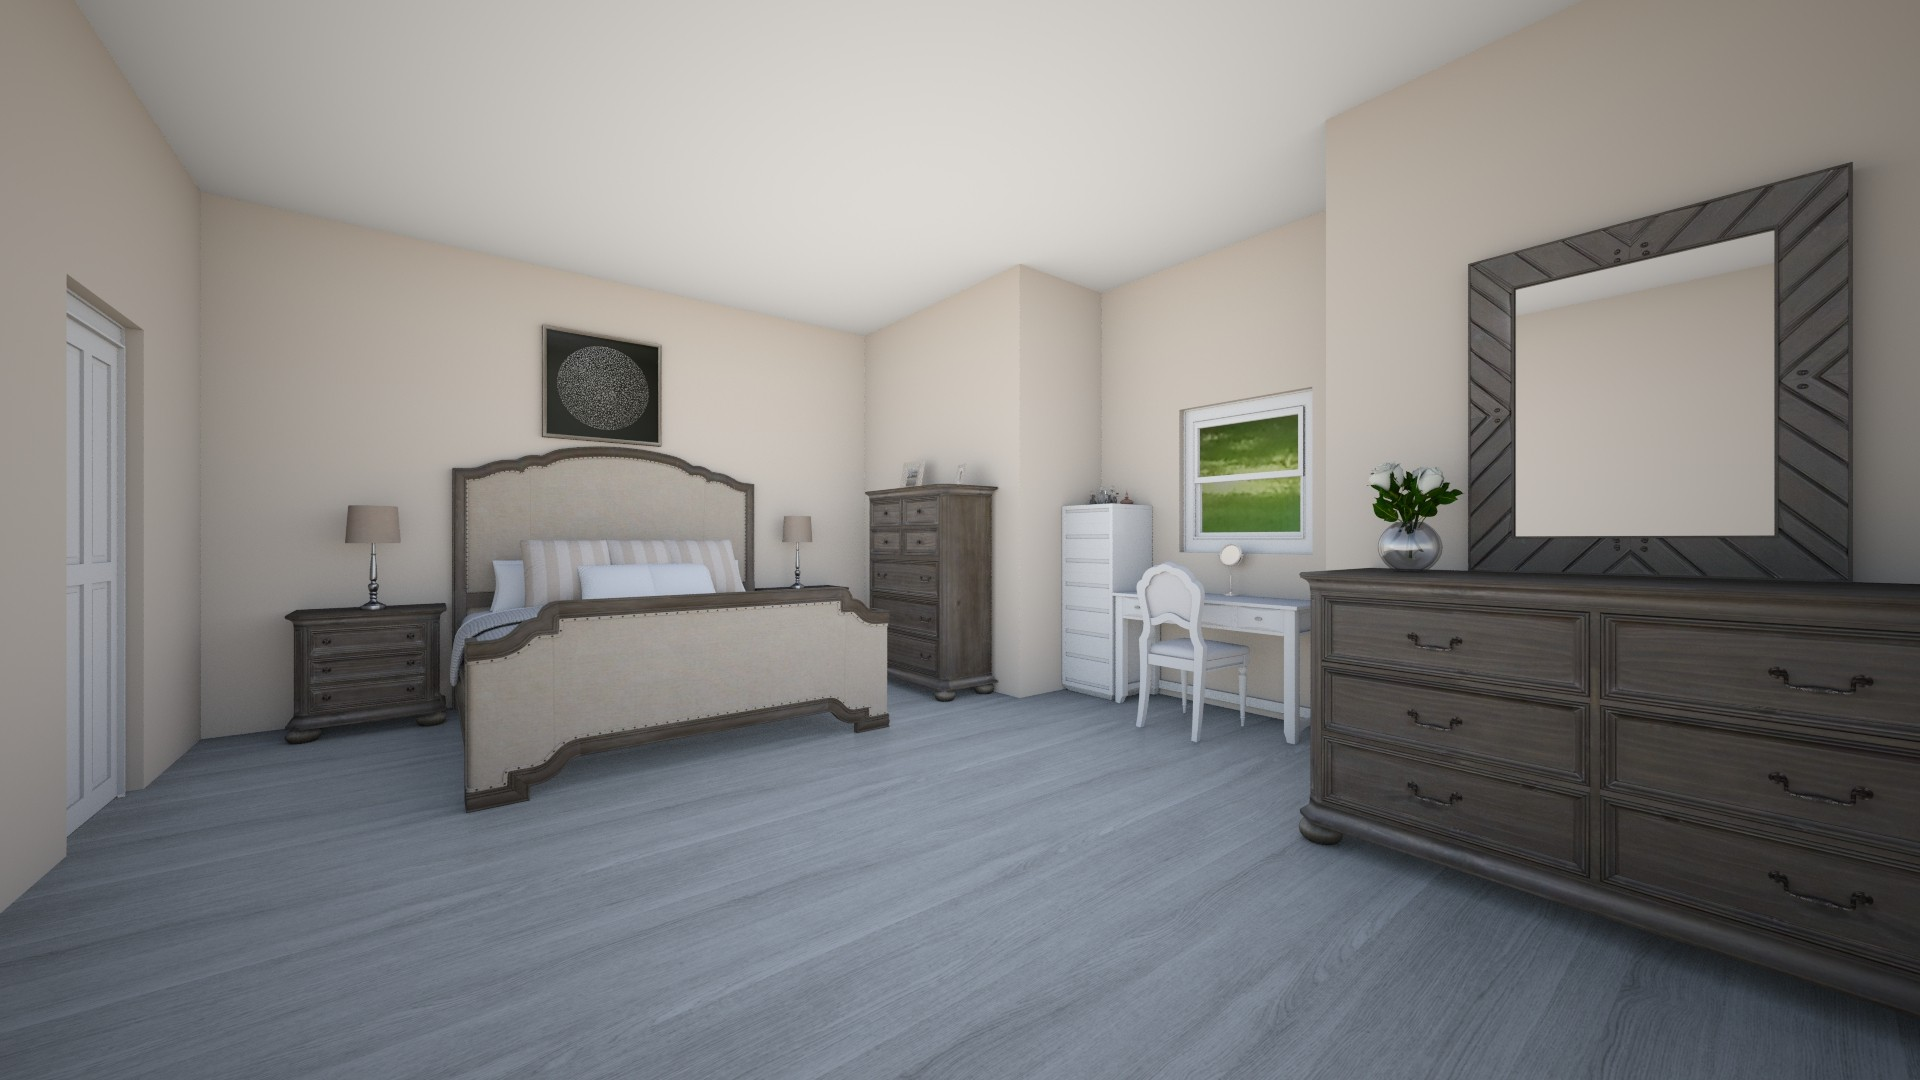 Rustic Bedroom - by Khyra